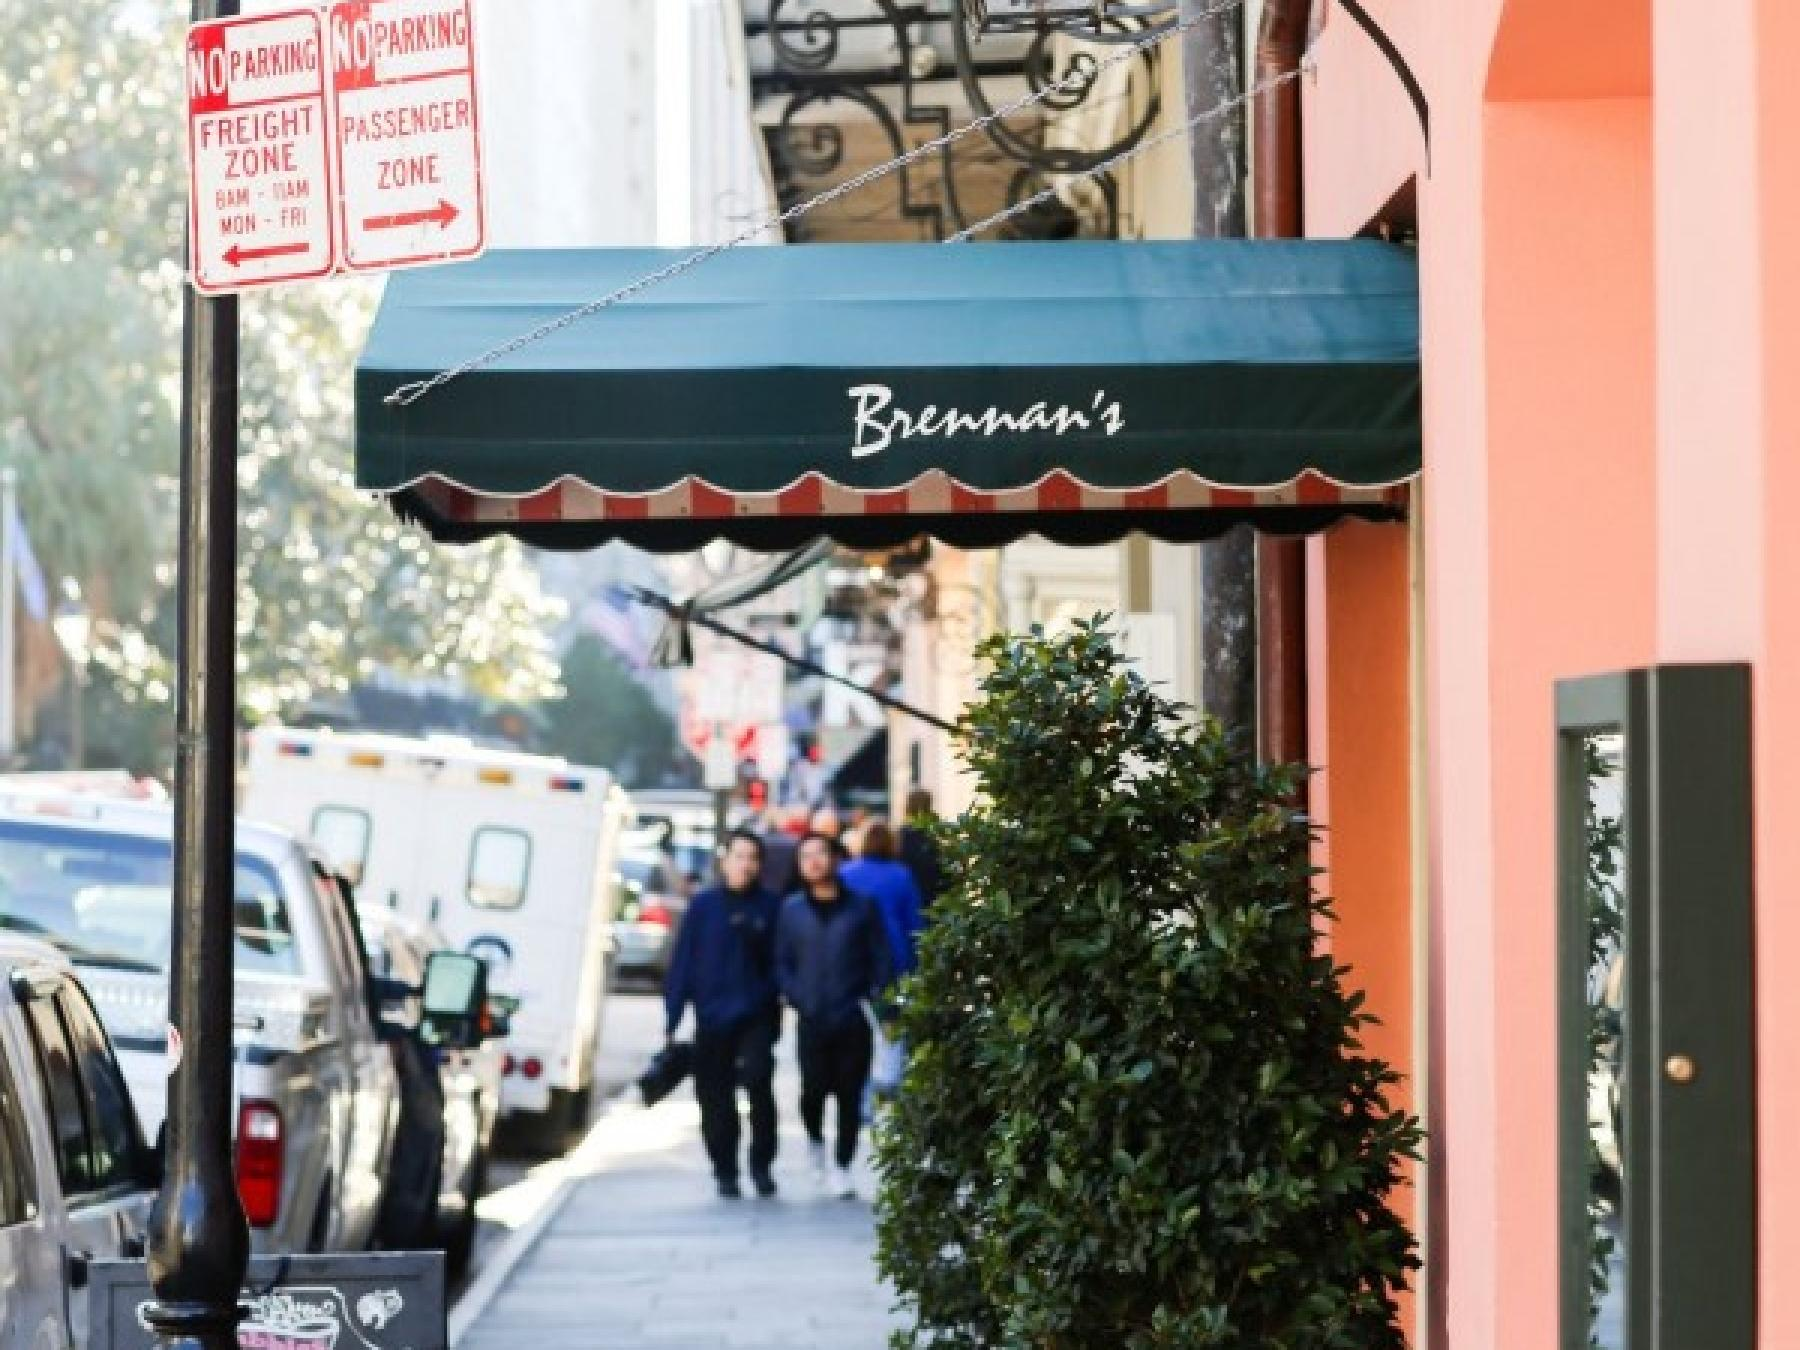 Exterior view of Brennan's entrance near Andrew Jackson Hotel